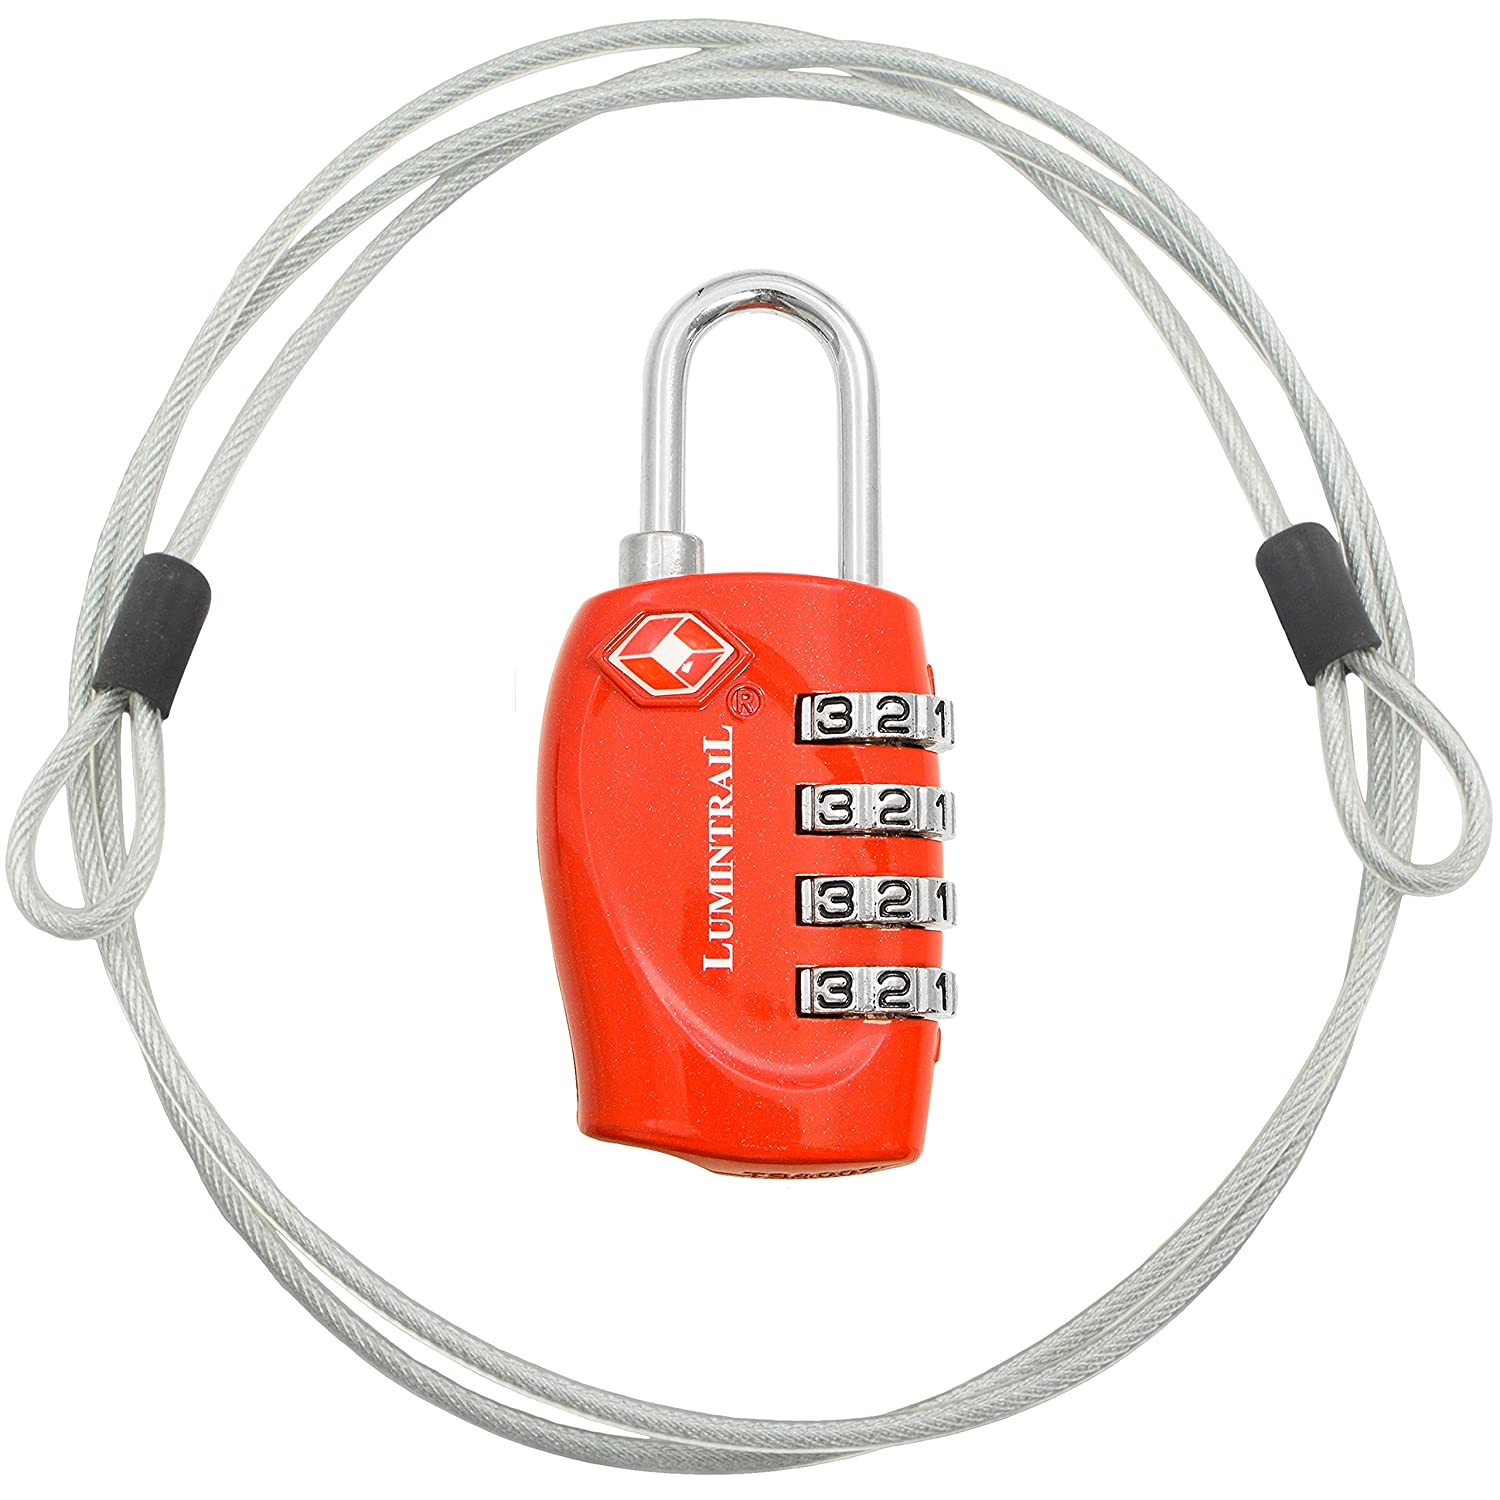 TSA Approved Travel Luggage Resettable Combination Lock w/ 4-ft Steel Cable Lumintrail LKTSA330